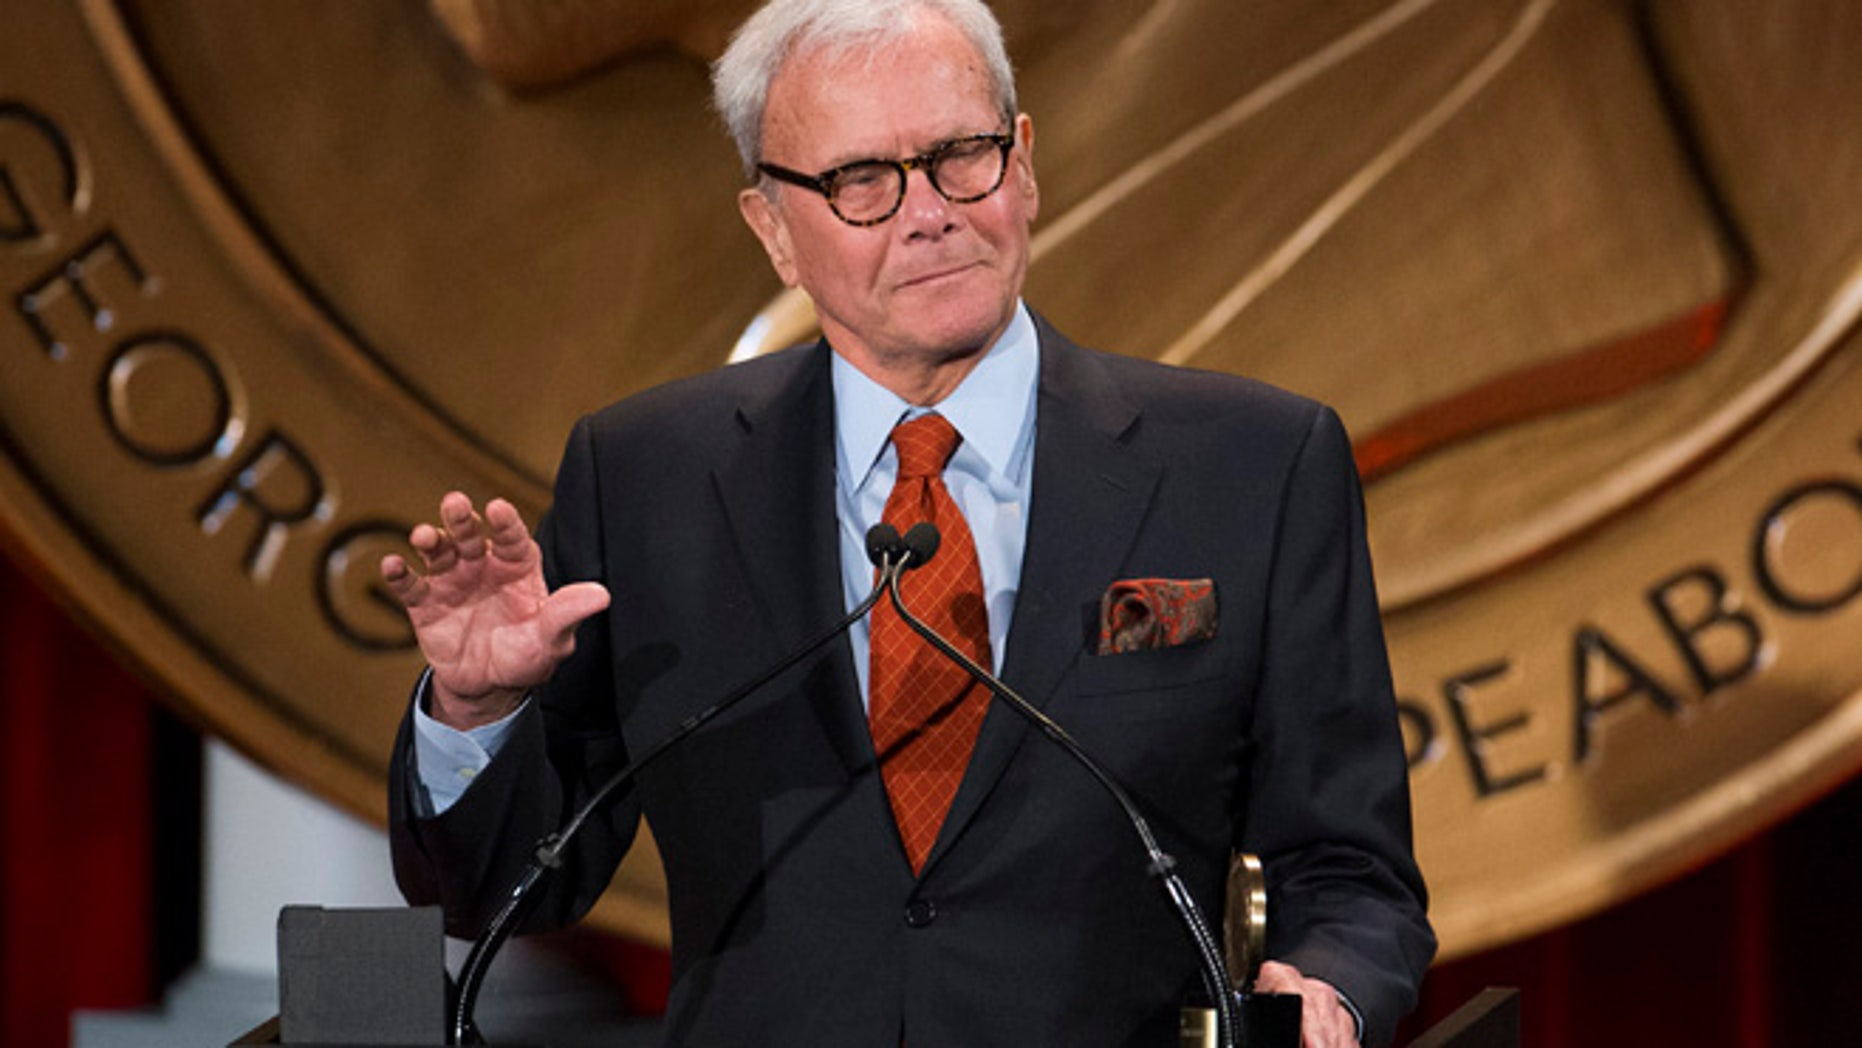 Tom Brokaw was subjected to considerable criticism for his comments on